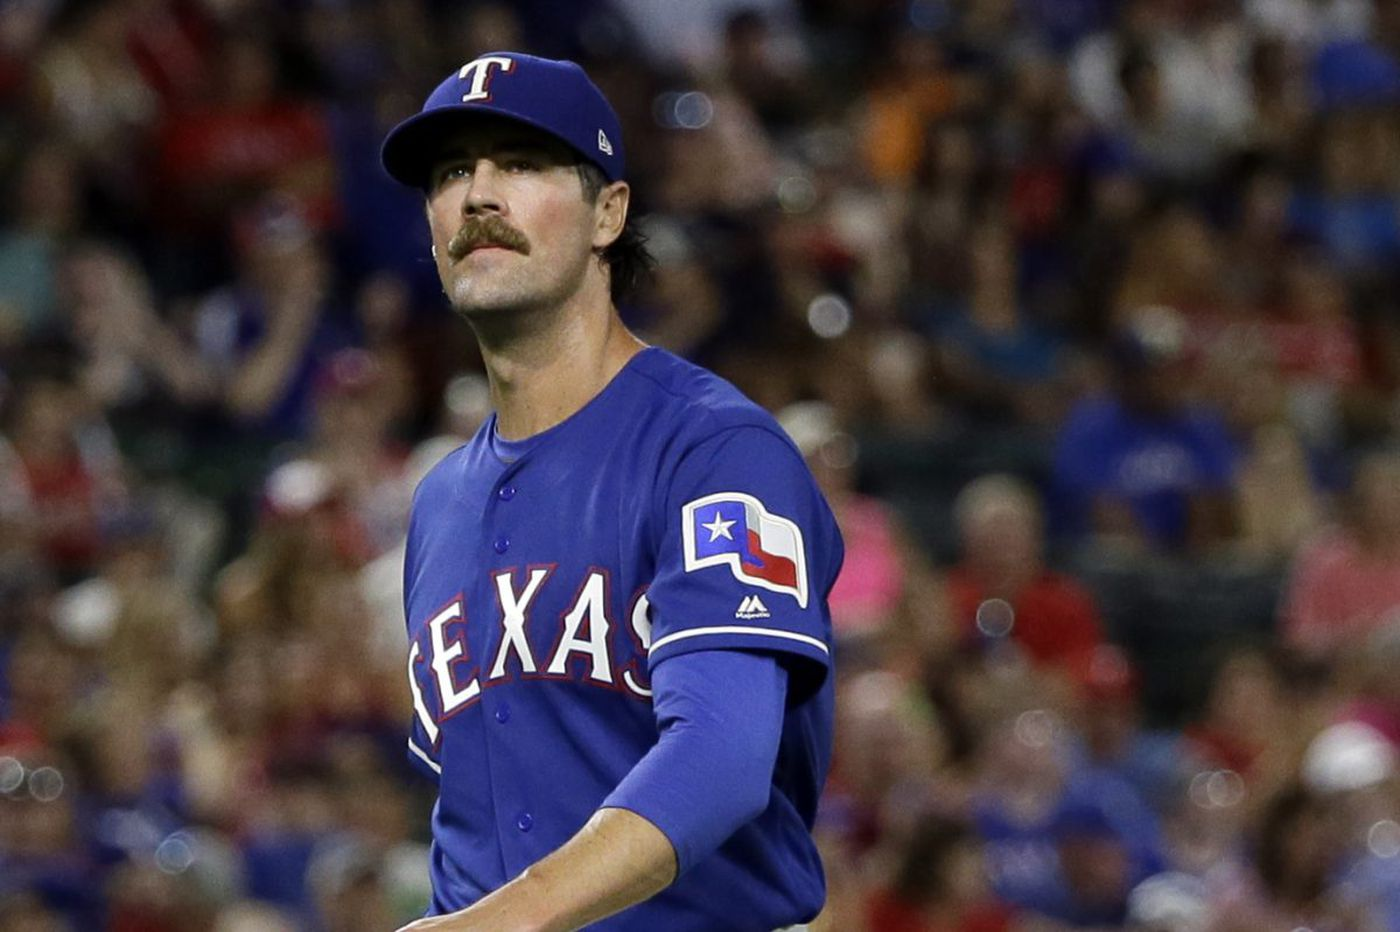 Cole Hamels says Phillies will be like Astros. Might he be part of it?